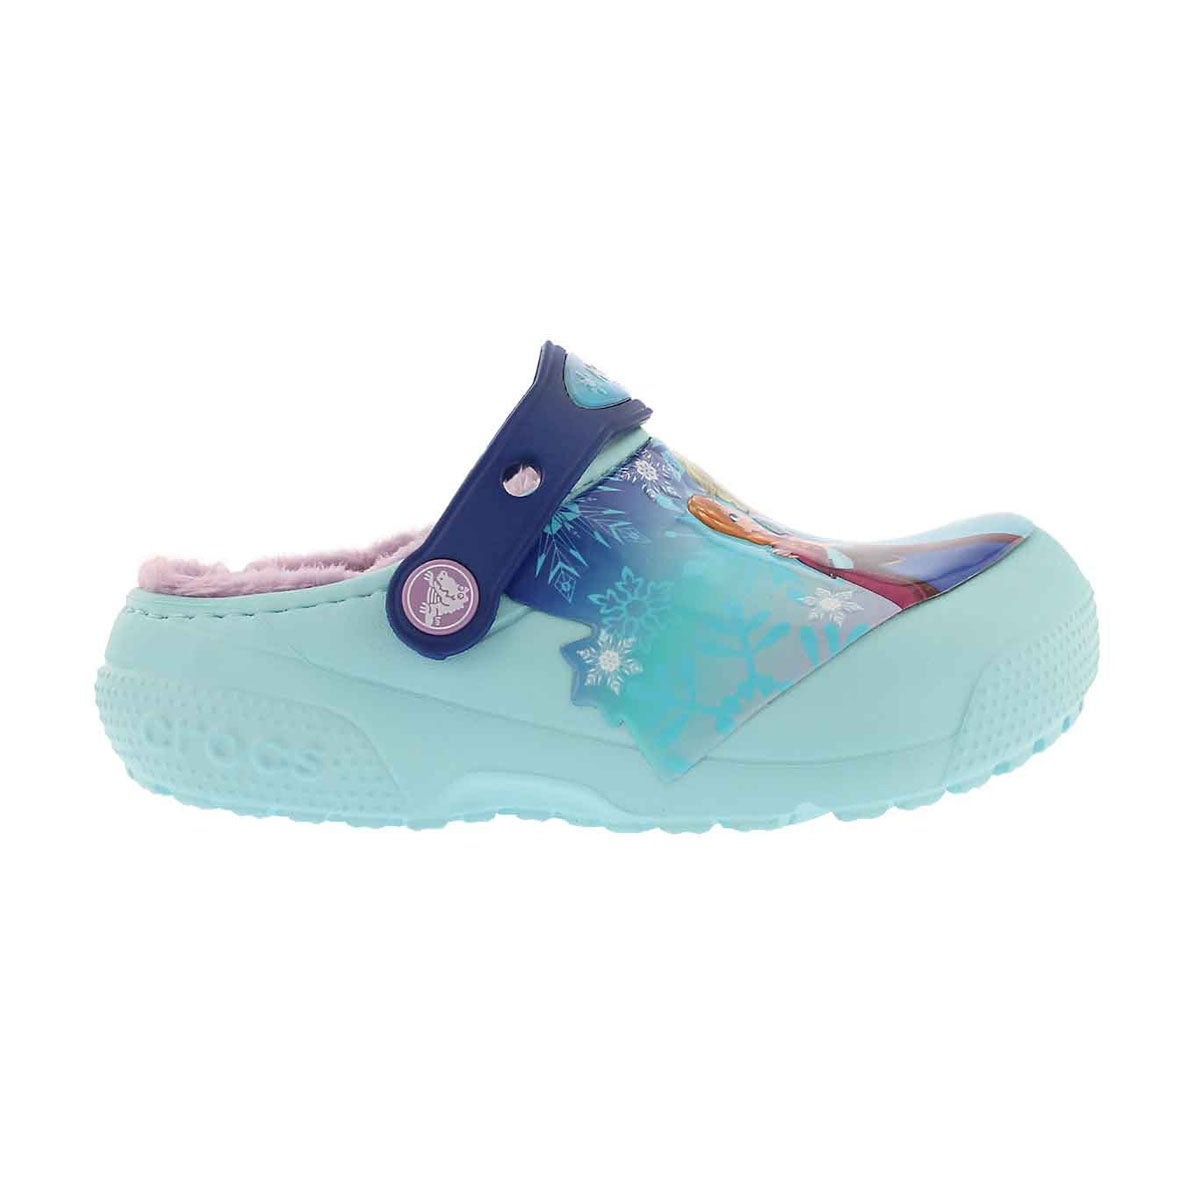 Grls FunLab Lined Frozen ice blu clog